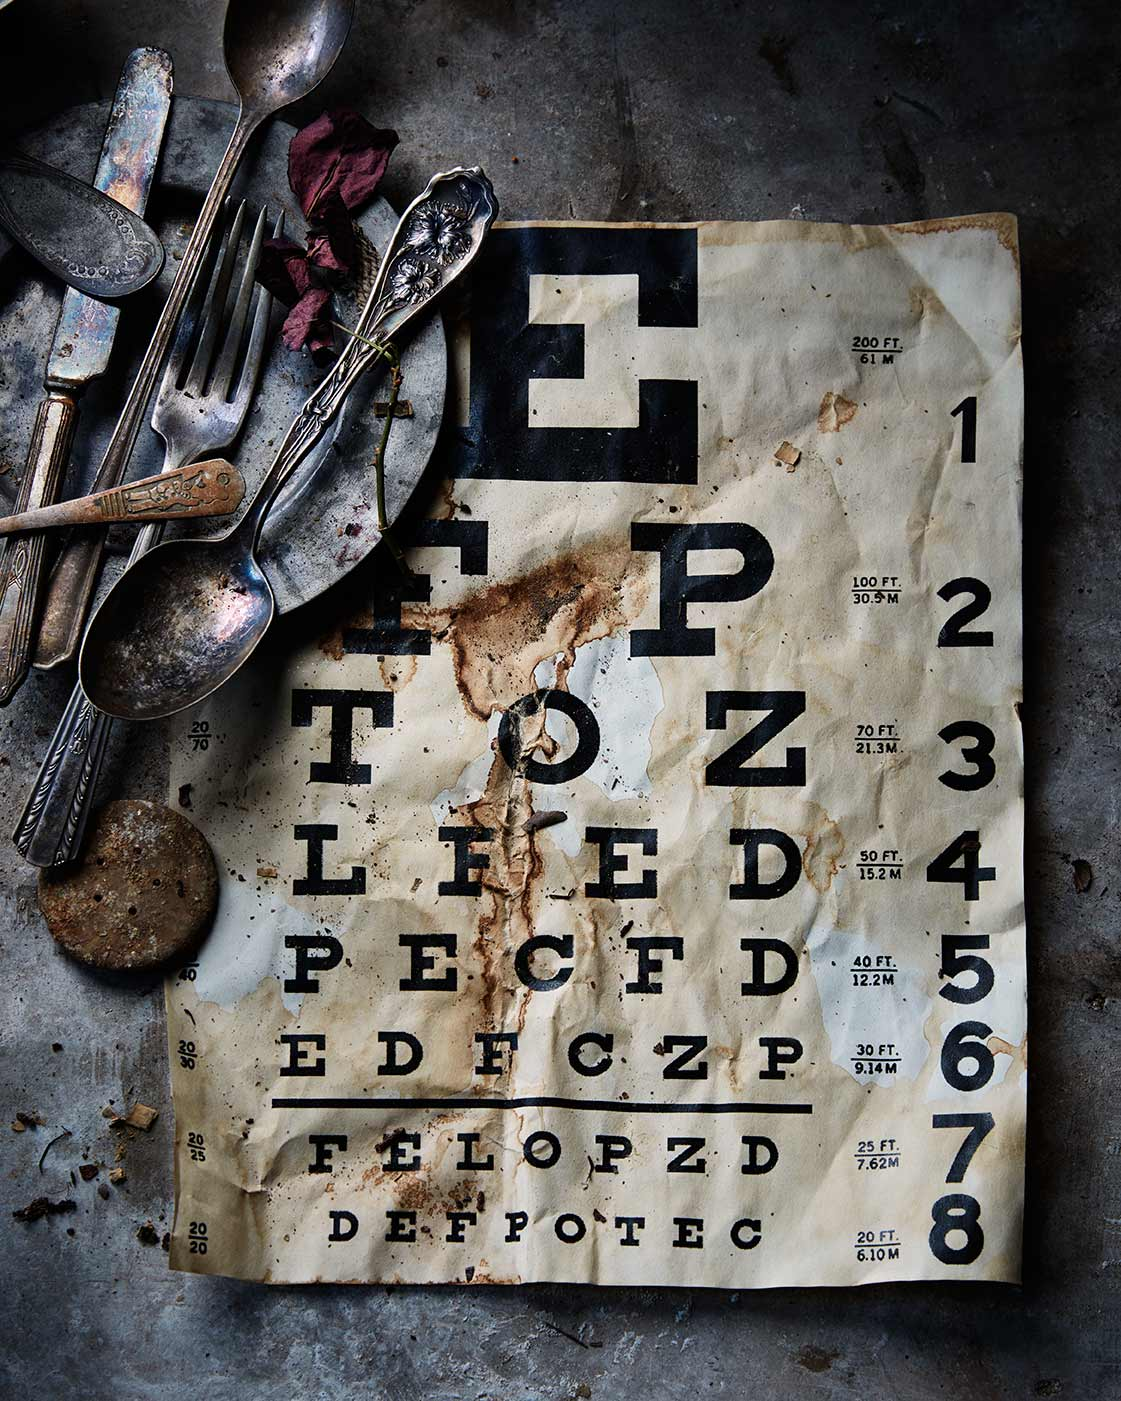 Dark moody still life photograph featuring an eye chart and silverware.